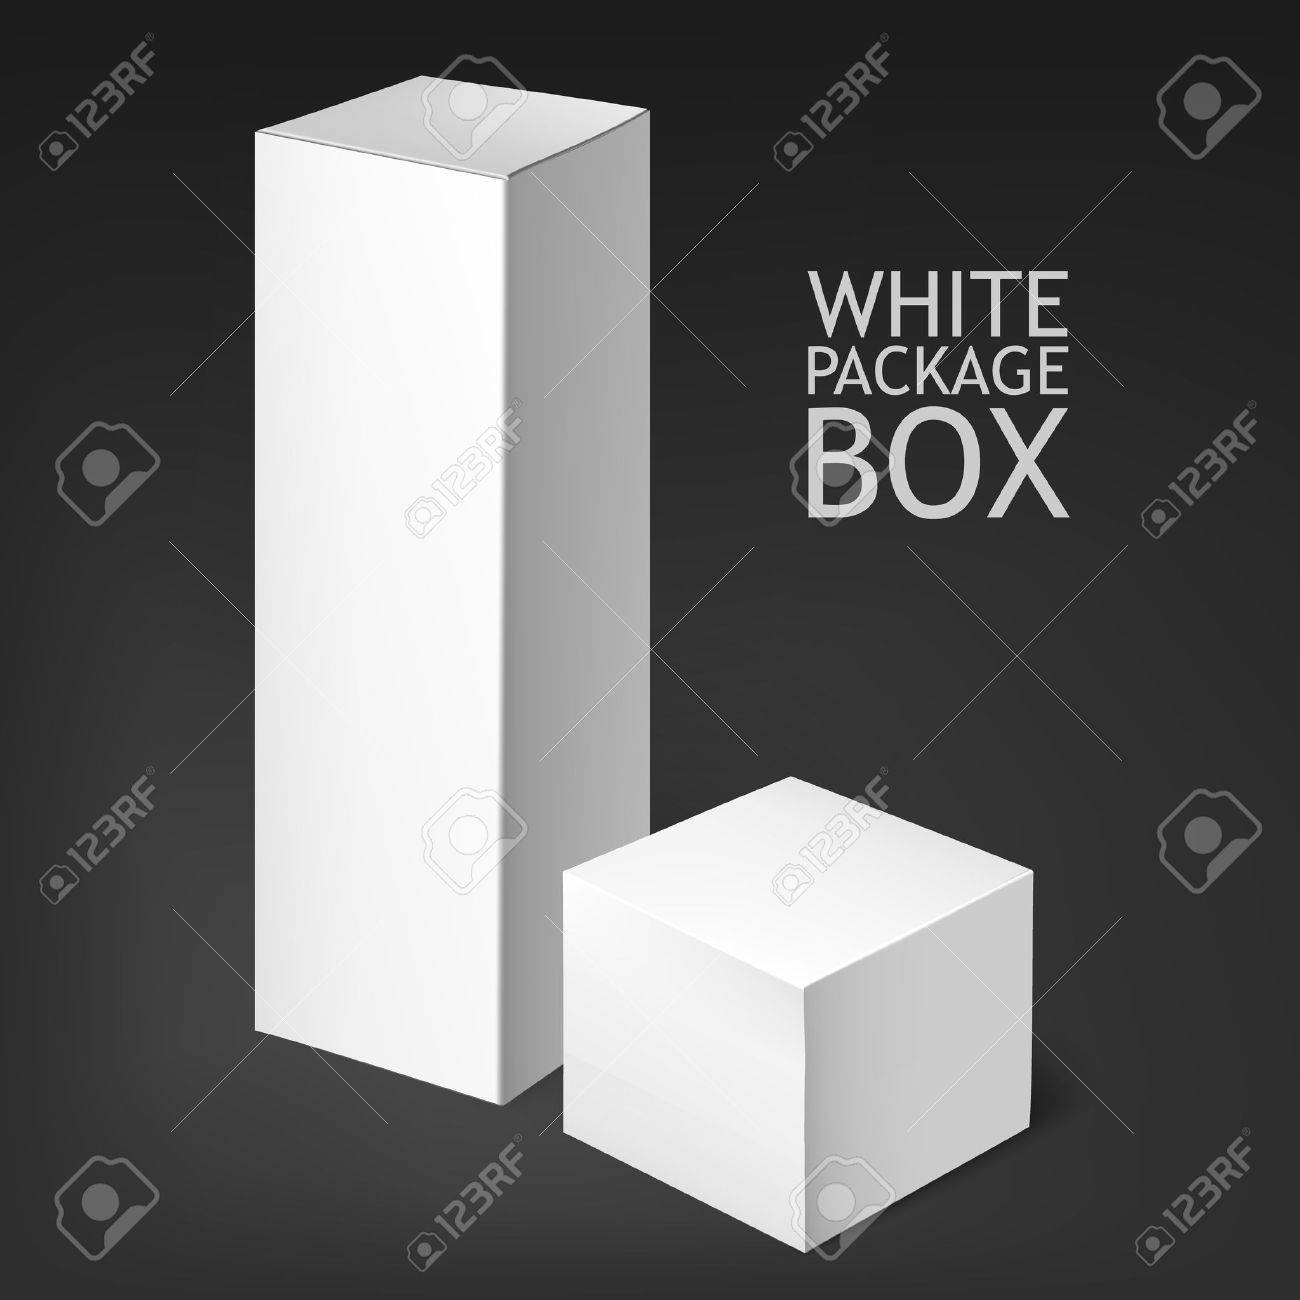 Set Of White Package Box  Mockup Template  he box is suitable